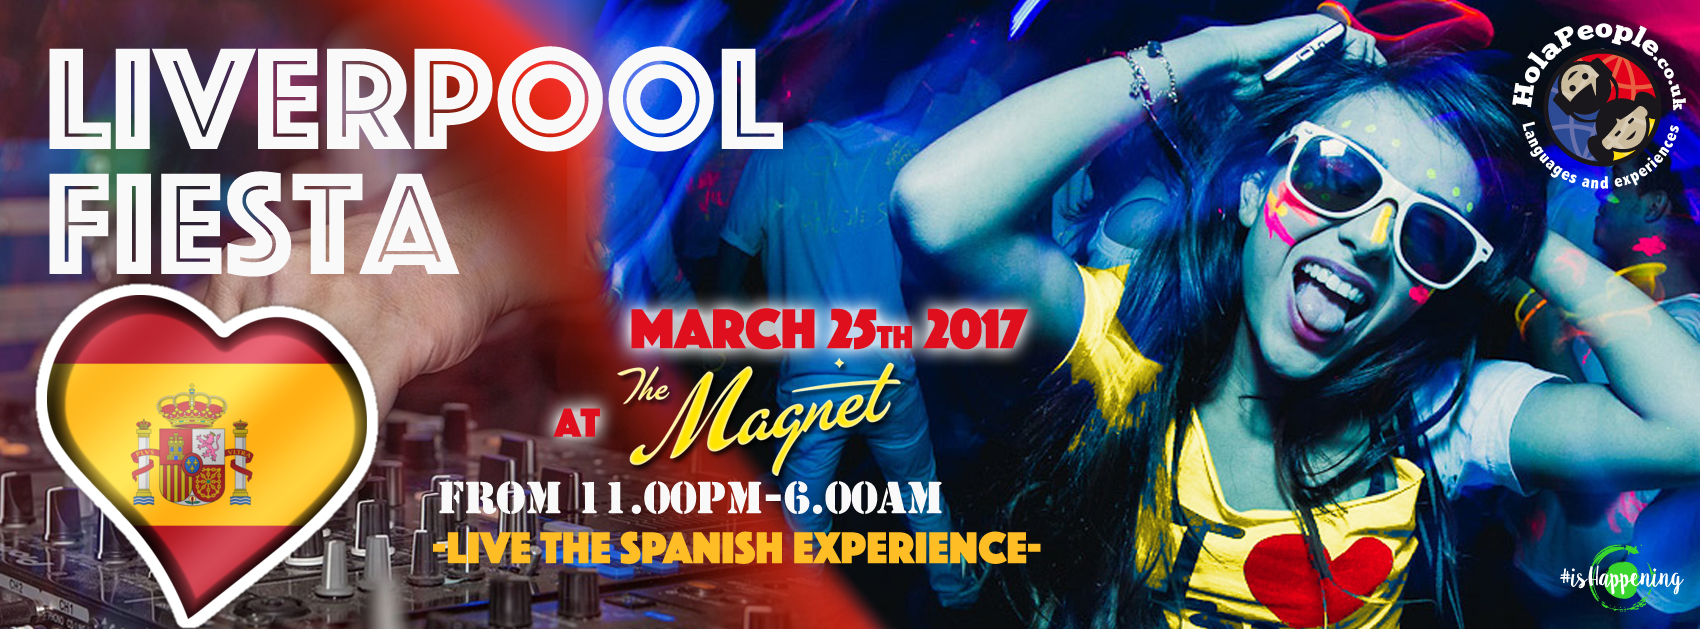 de79405050 Come and join us to meet new people and have a lot of fun in the Liverpool  Spanish Fiesta… at Spanish time!